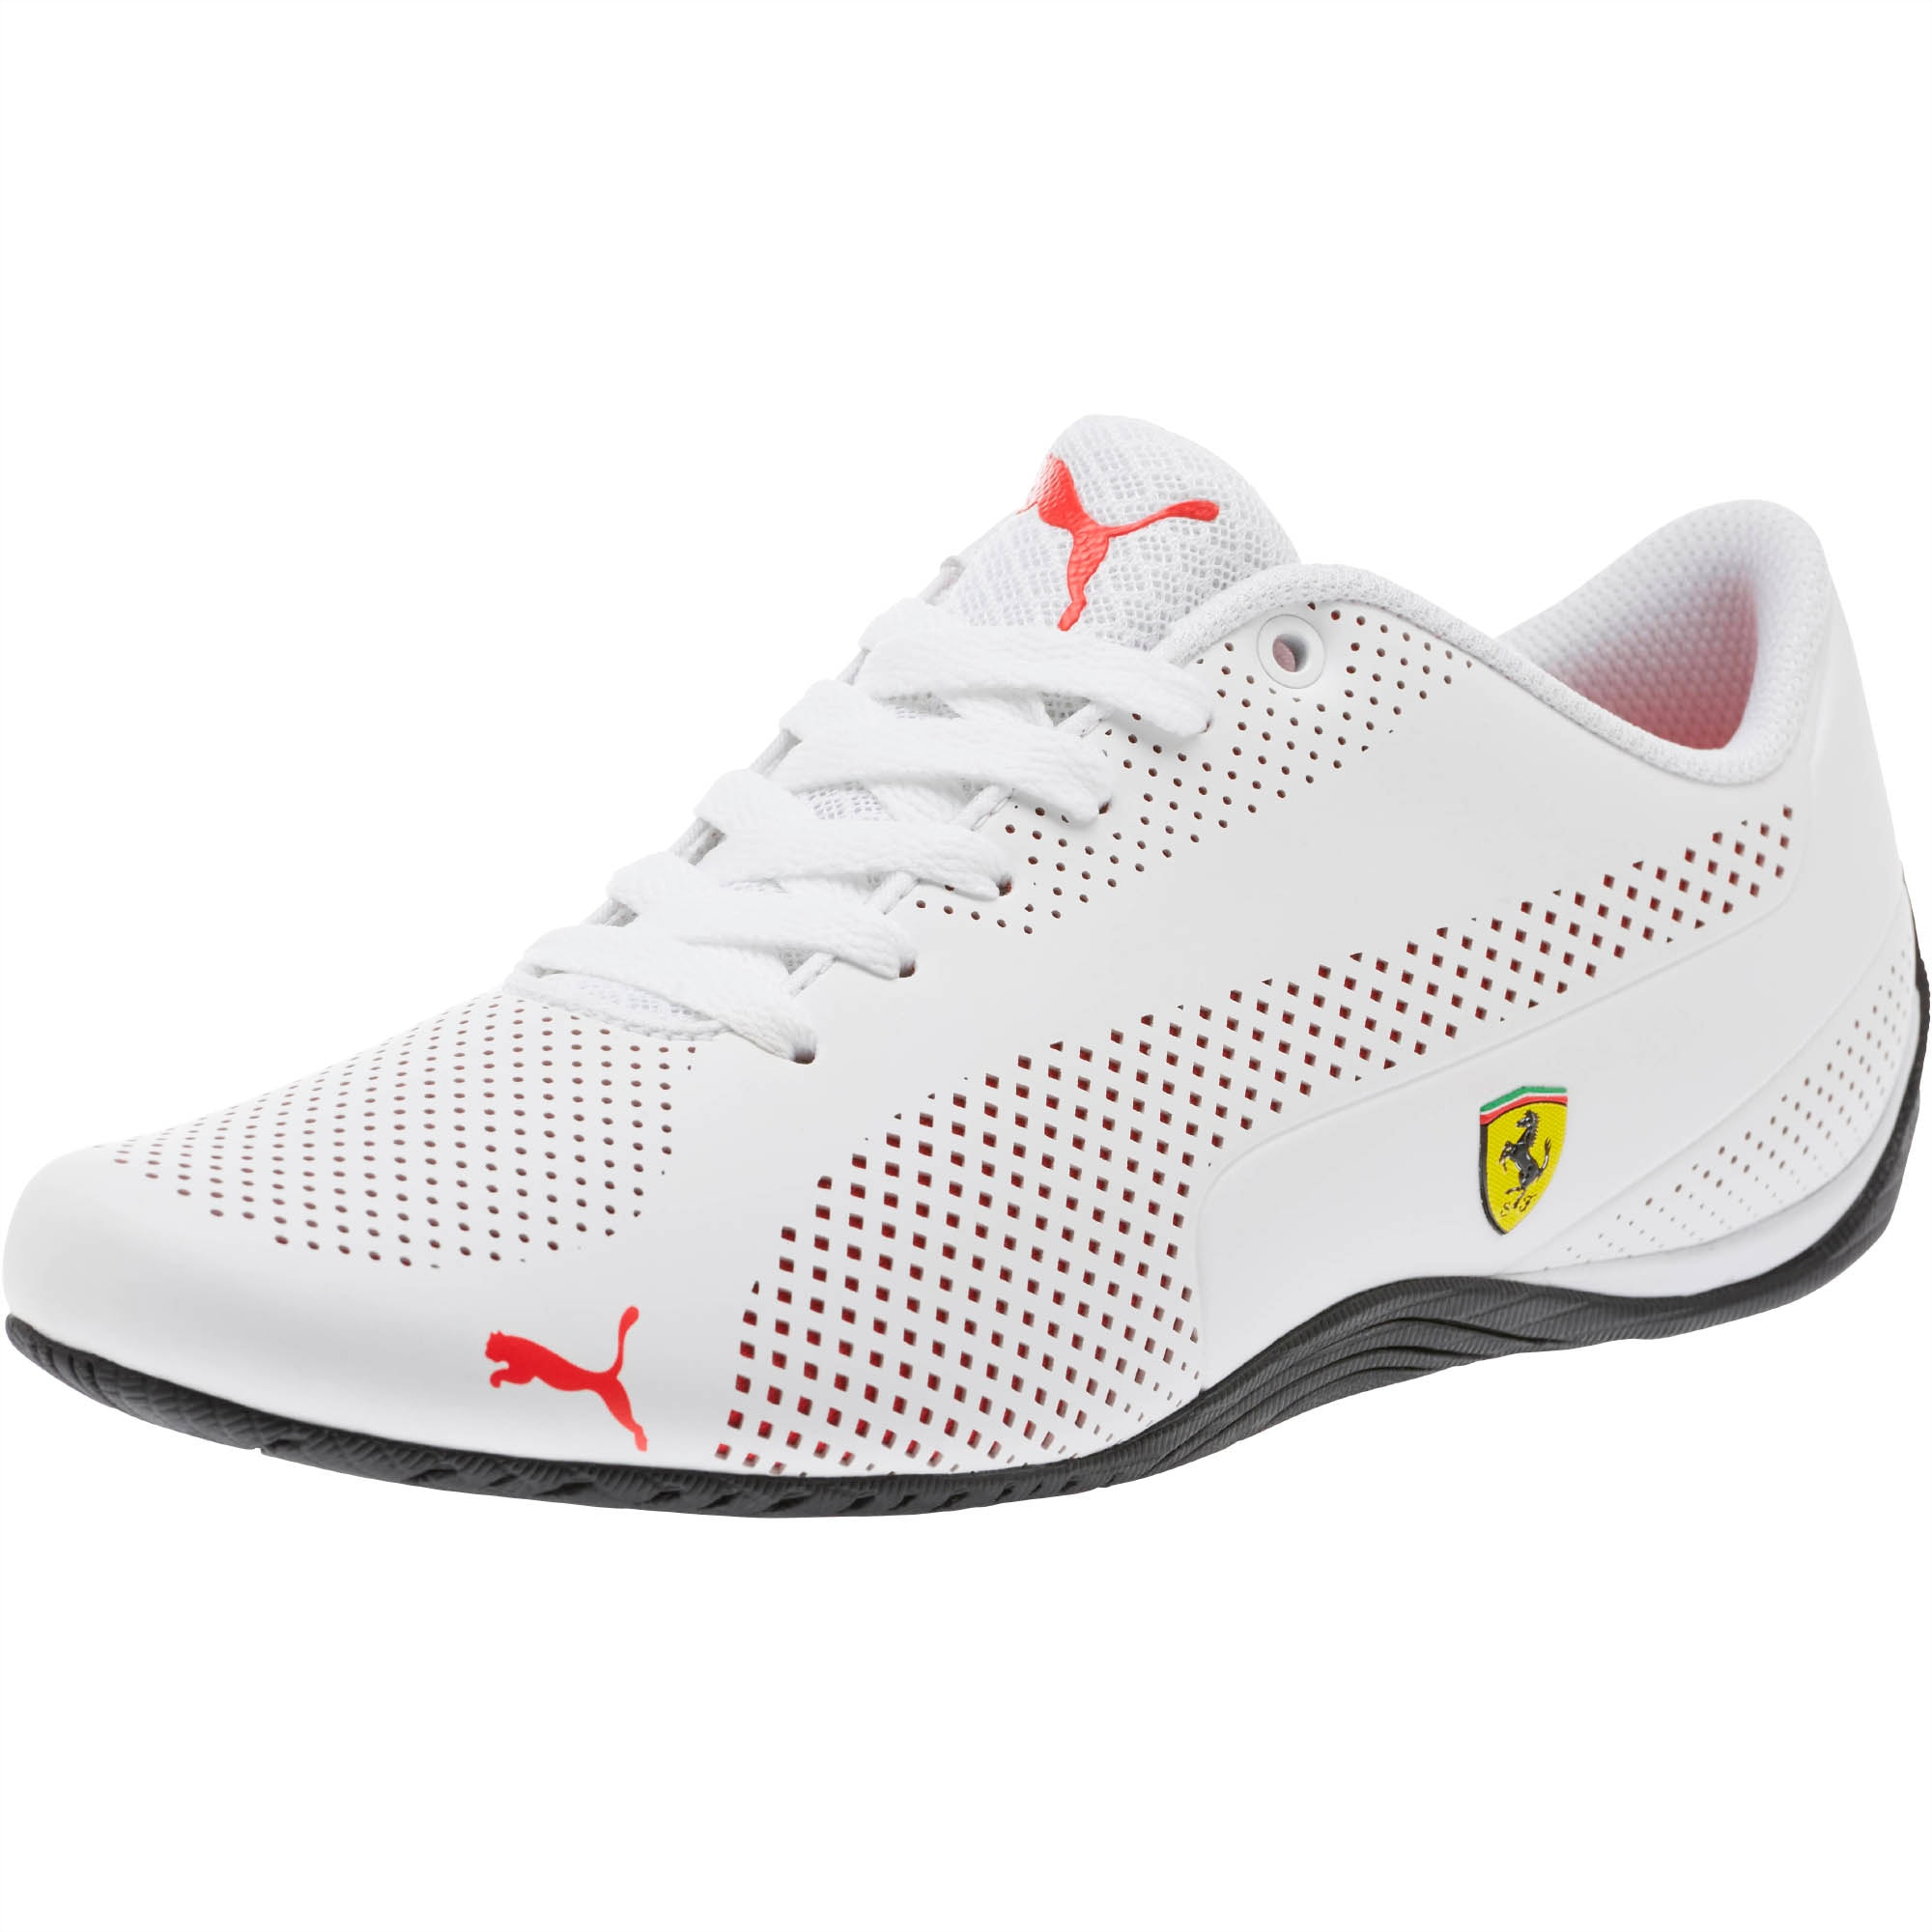 Scuderia Ferrari Drift Cat 5 Ultra Men's Shoes